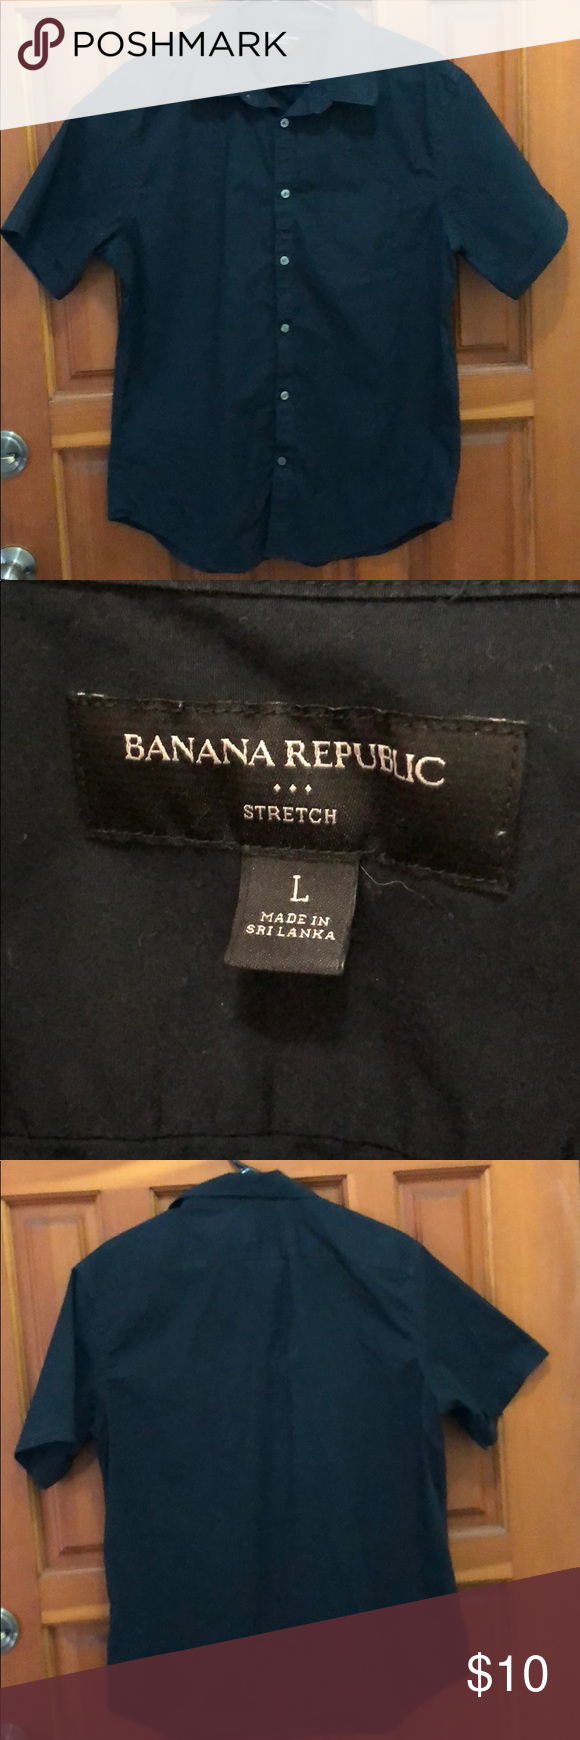 """Black button down shirt L BANANA REPUBLIC plain black button down shirt. Tags say large stretch. To my husband this feels like a medium due to he is not used to wearing shorts with shorter sleeve lengths and has some stretch.  Nice plain black perfect with faded jeans!  Shoulder to shoulder 18.5"""" Armpit to armpit 21"""" Shoulder seam to sleeve hem 9"""" Banana Republic Shirts Casual Button Down Shirts"""